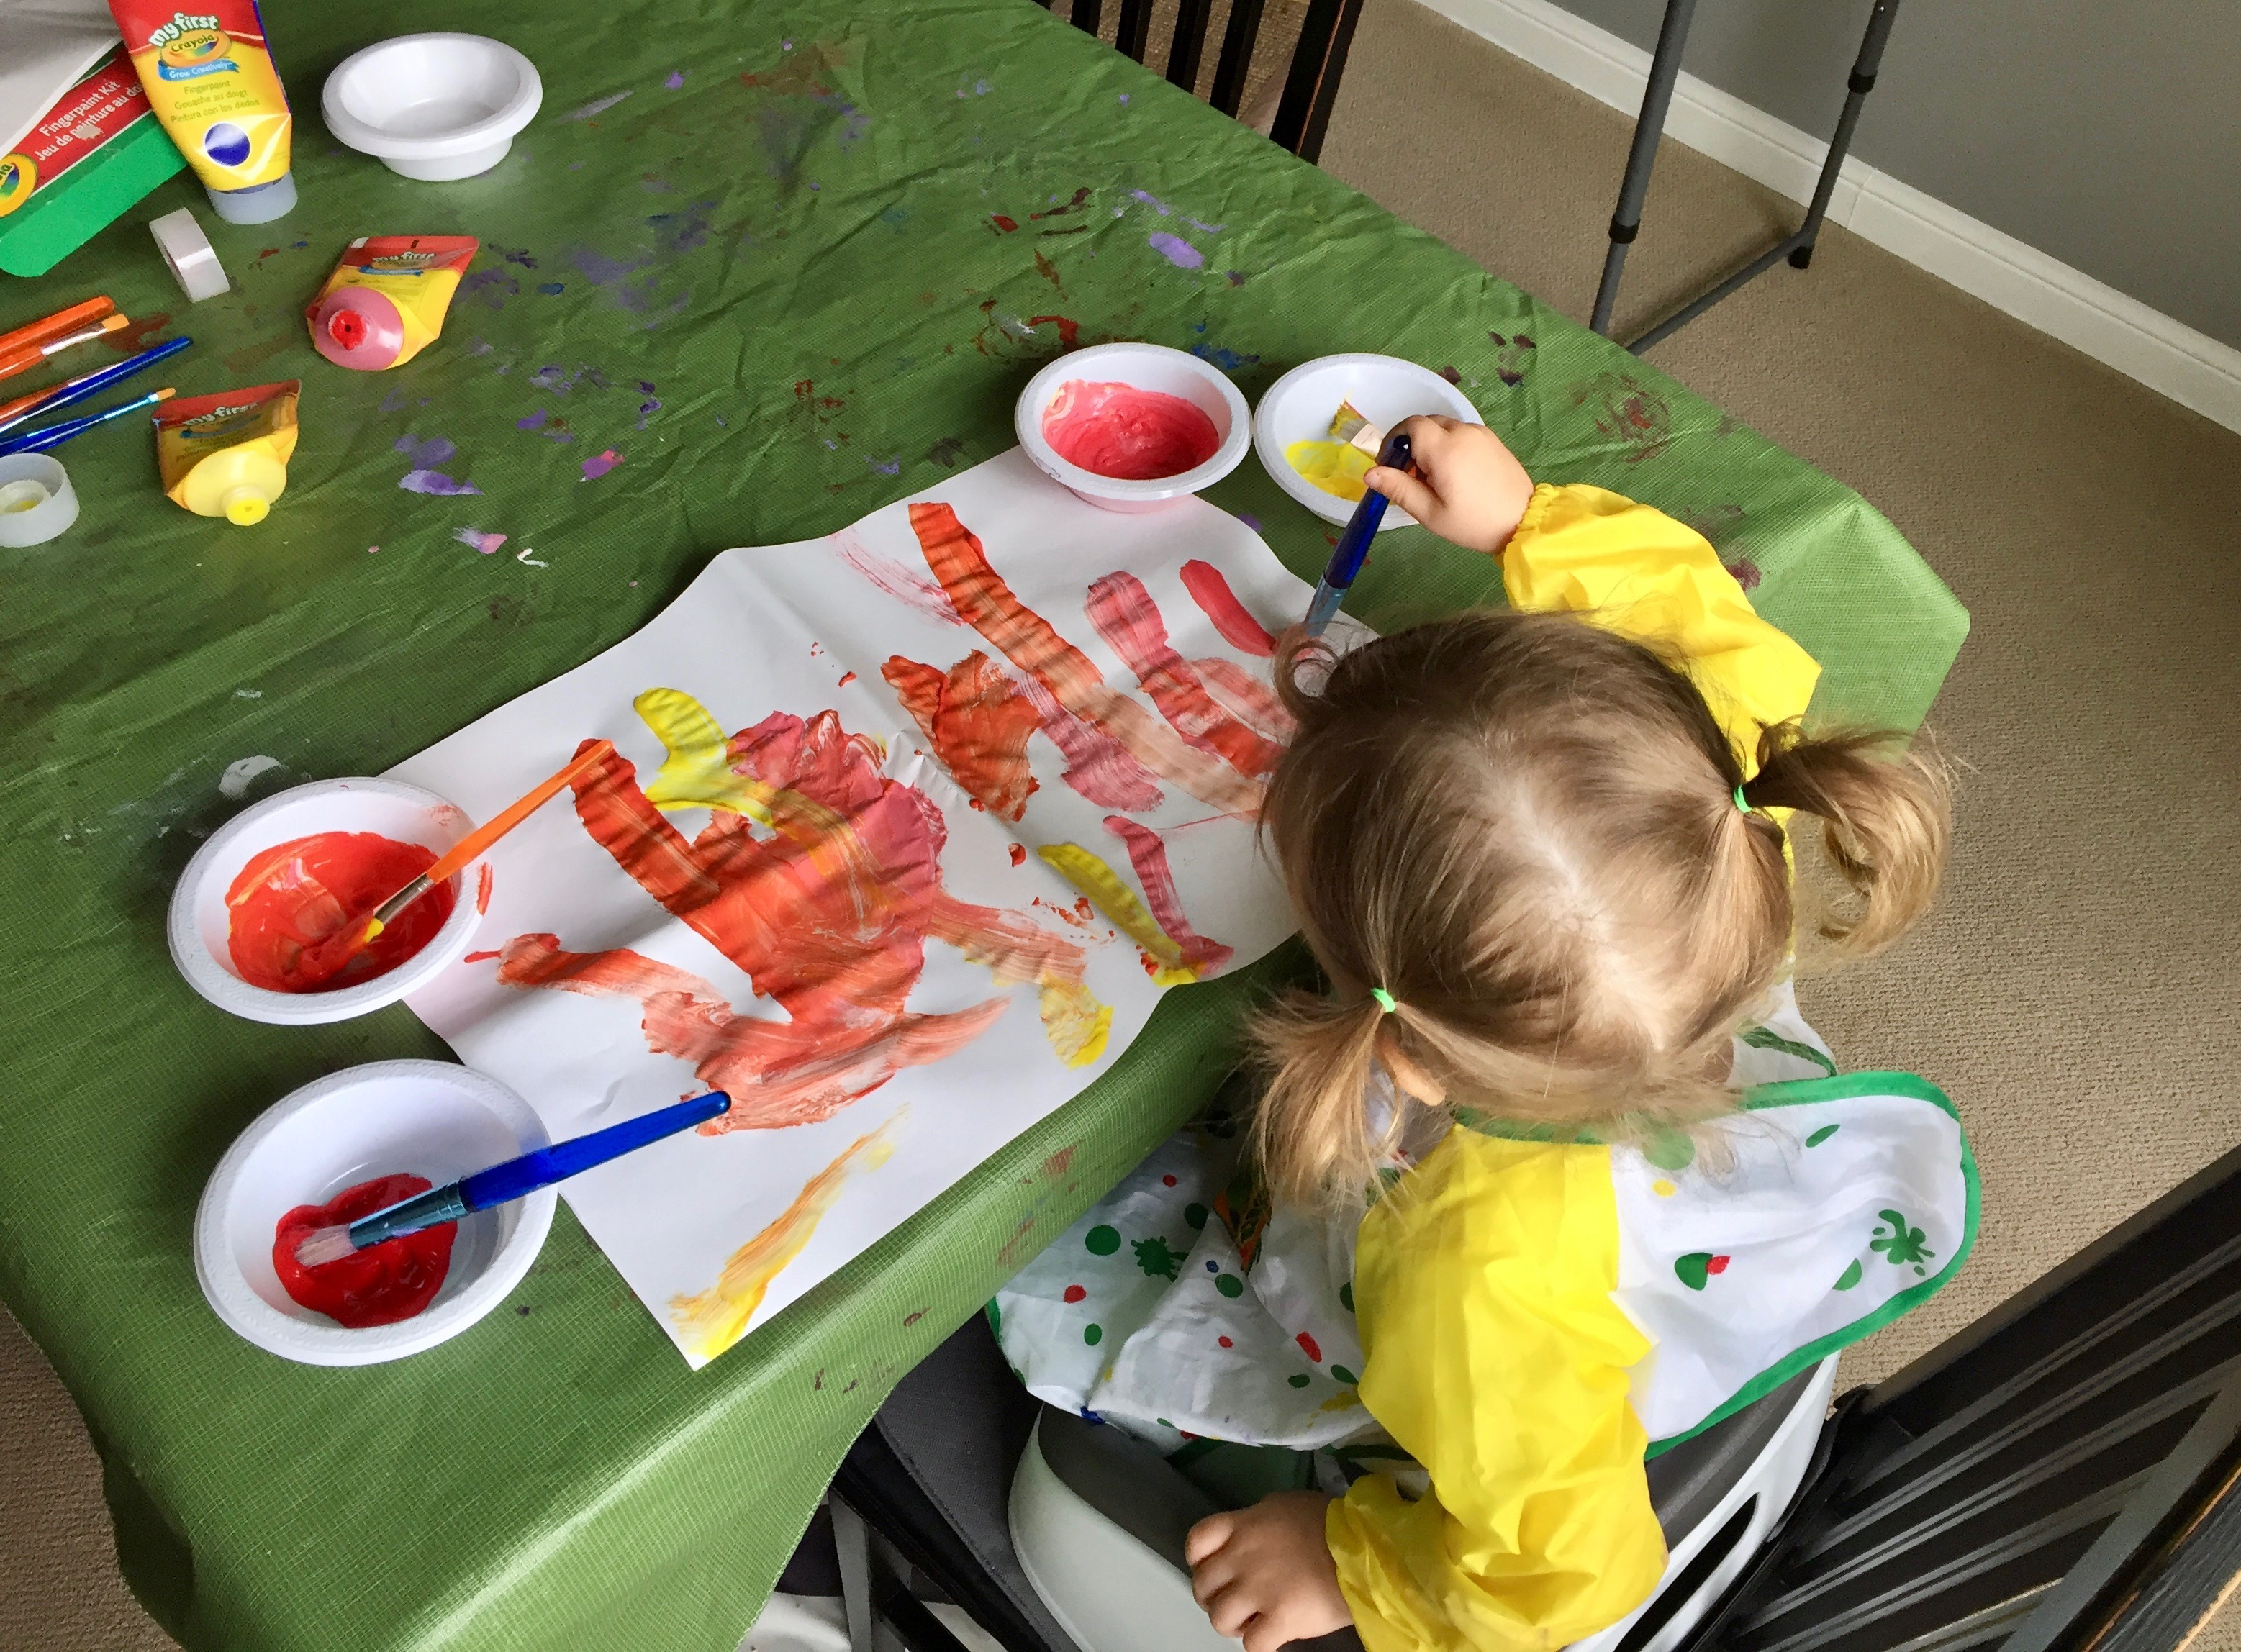 Painting is a great way to entertain a toddler